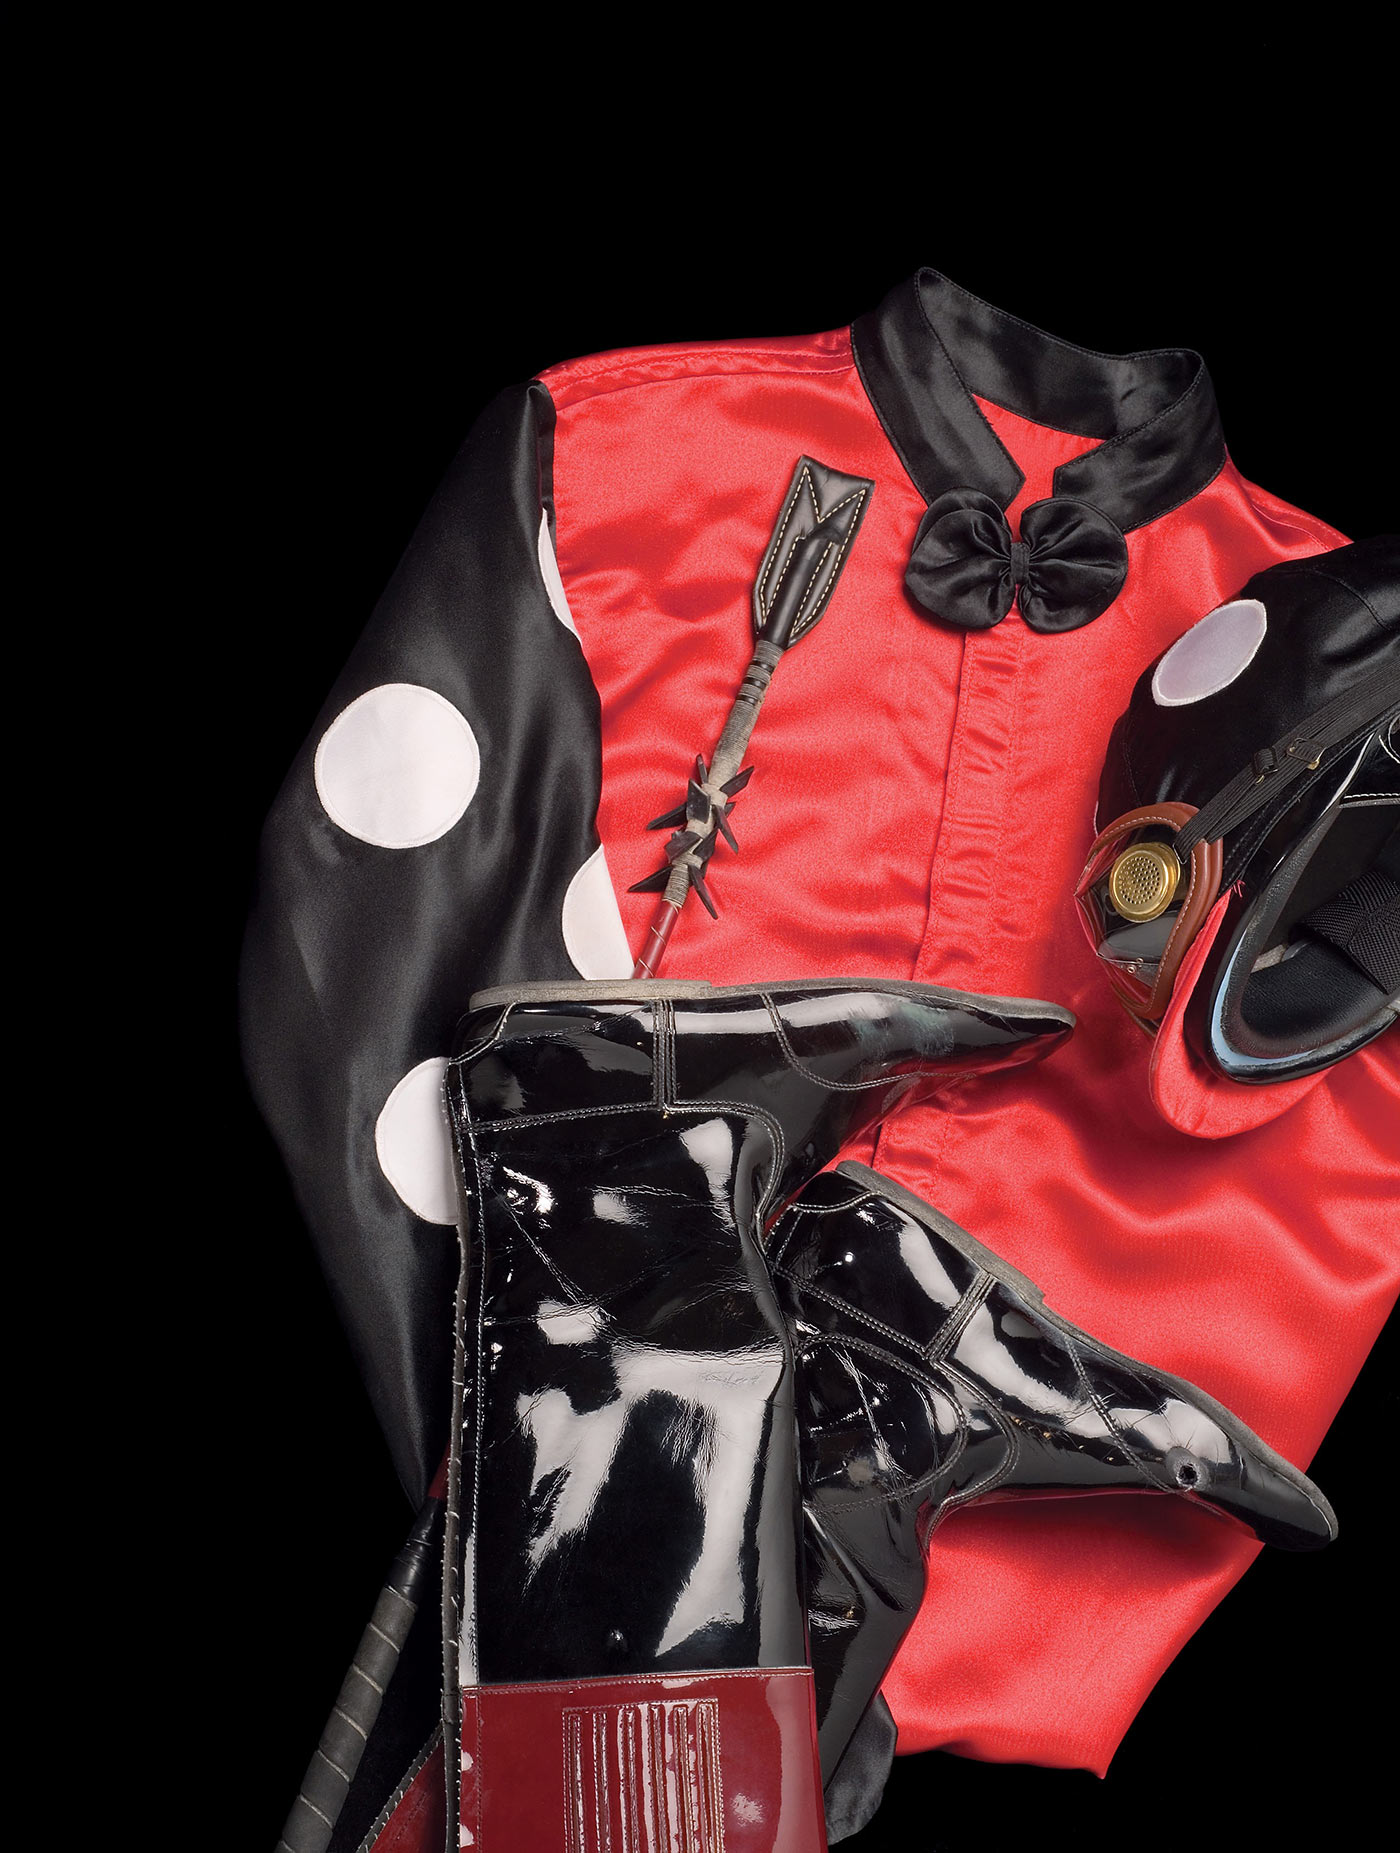 Red black jockey silks and boots